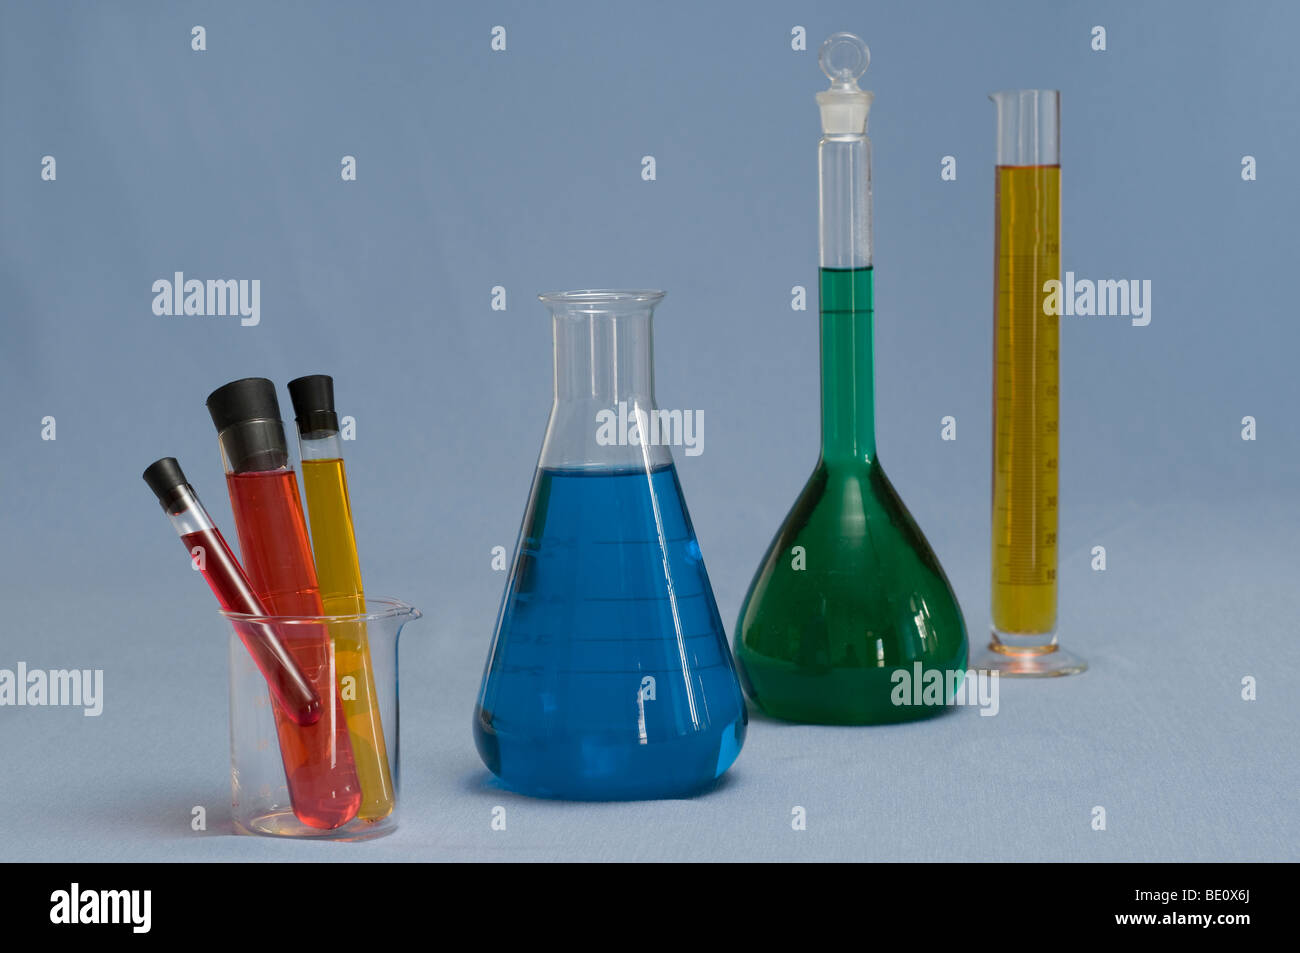 collection of Laboratory Equipment including beakers and flasks Stock Photo